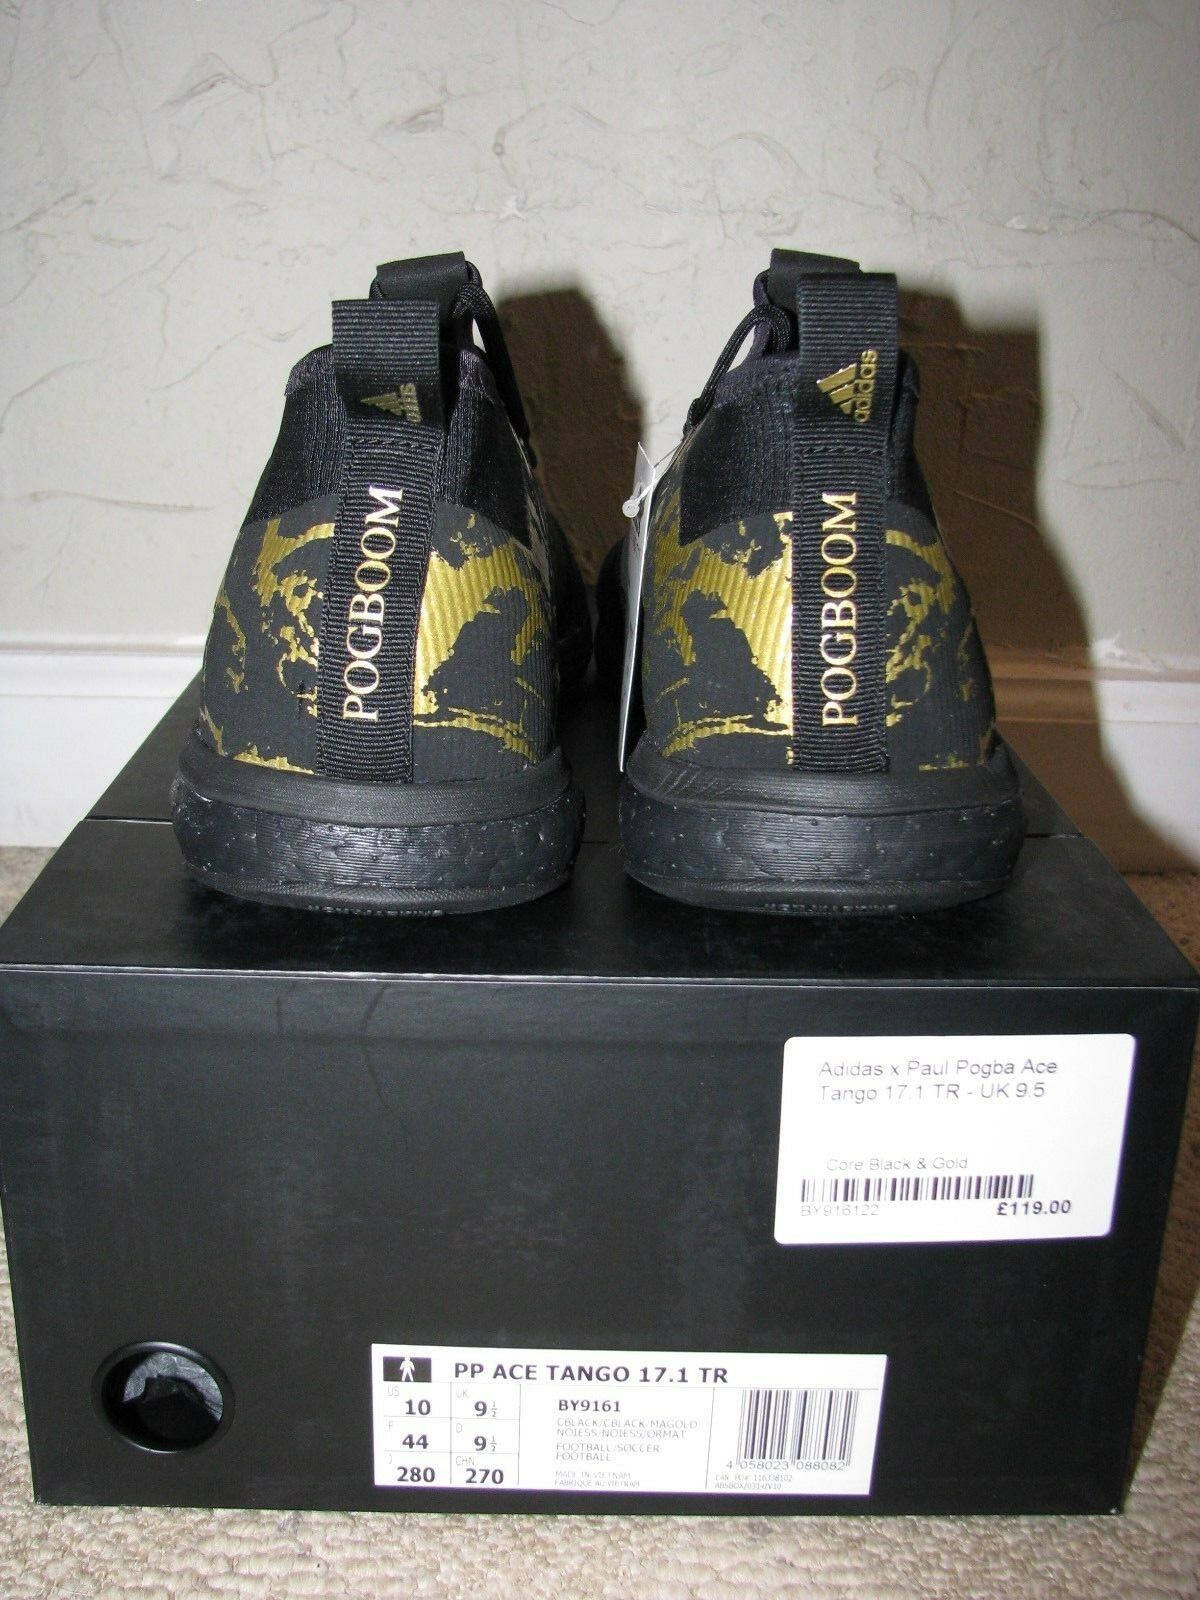 Paul Pogba X adidas Ace Tango 17.1 TR Boost Black Mens Size 10 DS By9161  for sale online  3f7c1a0898f24